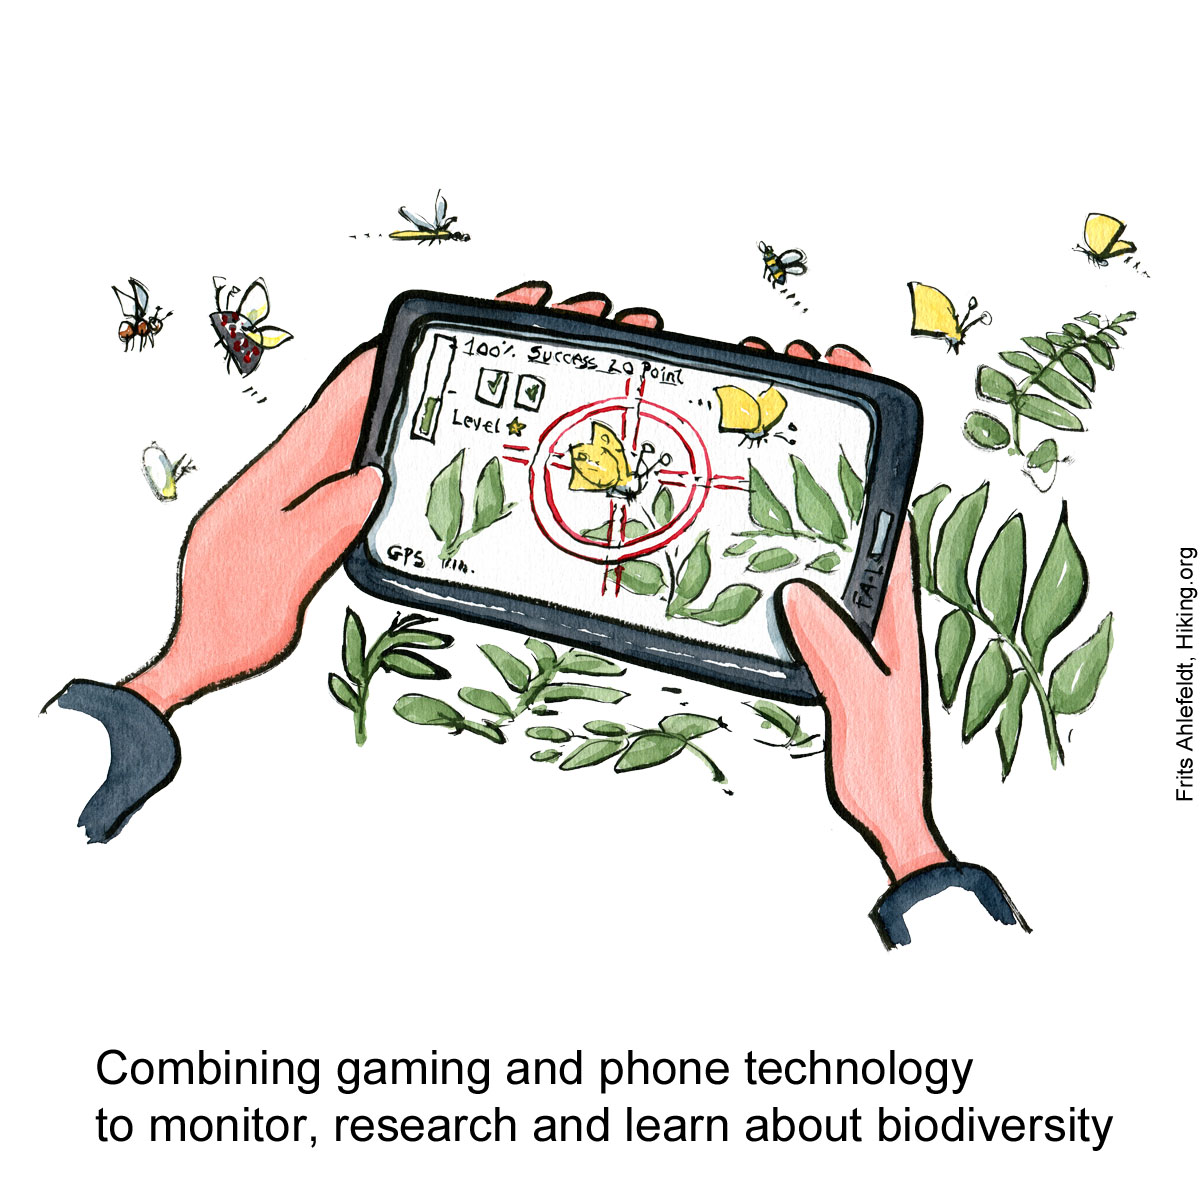 Illustration of hands holding a phone with a biodiversity game app on it. Citizen Science drawing by Frits Ahlefeldt